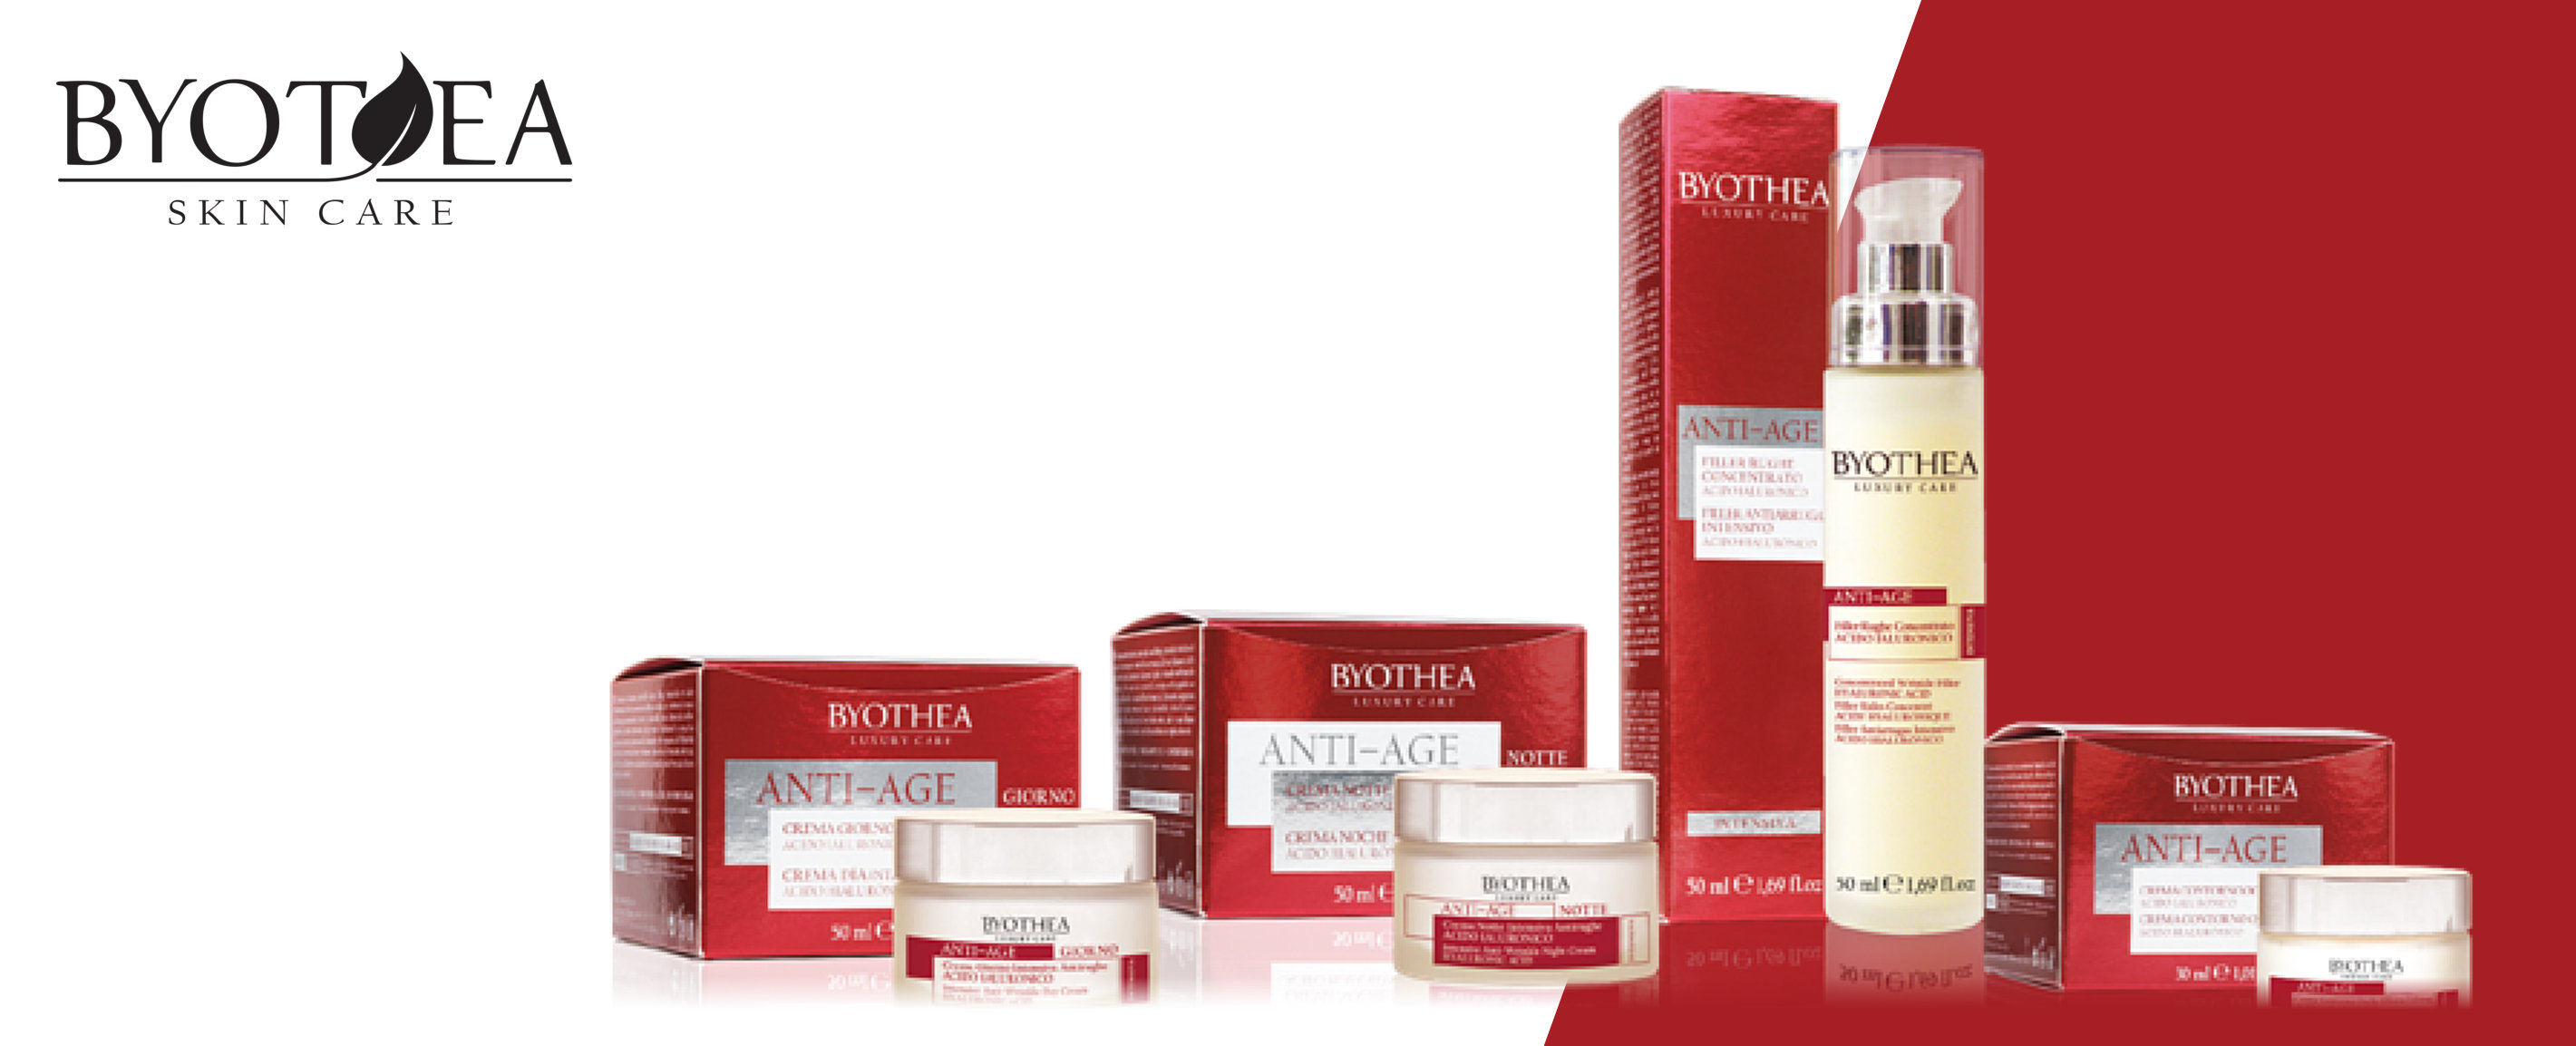 Byotea Anti-Age Intensive